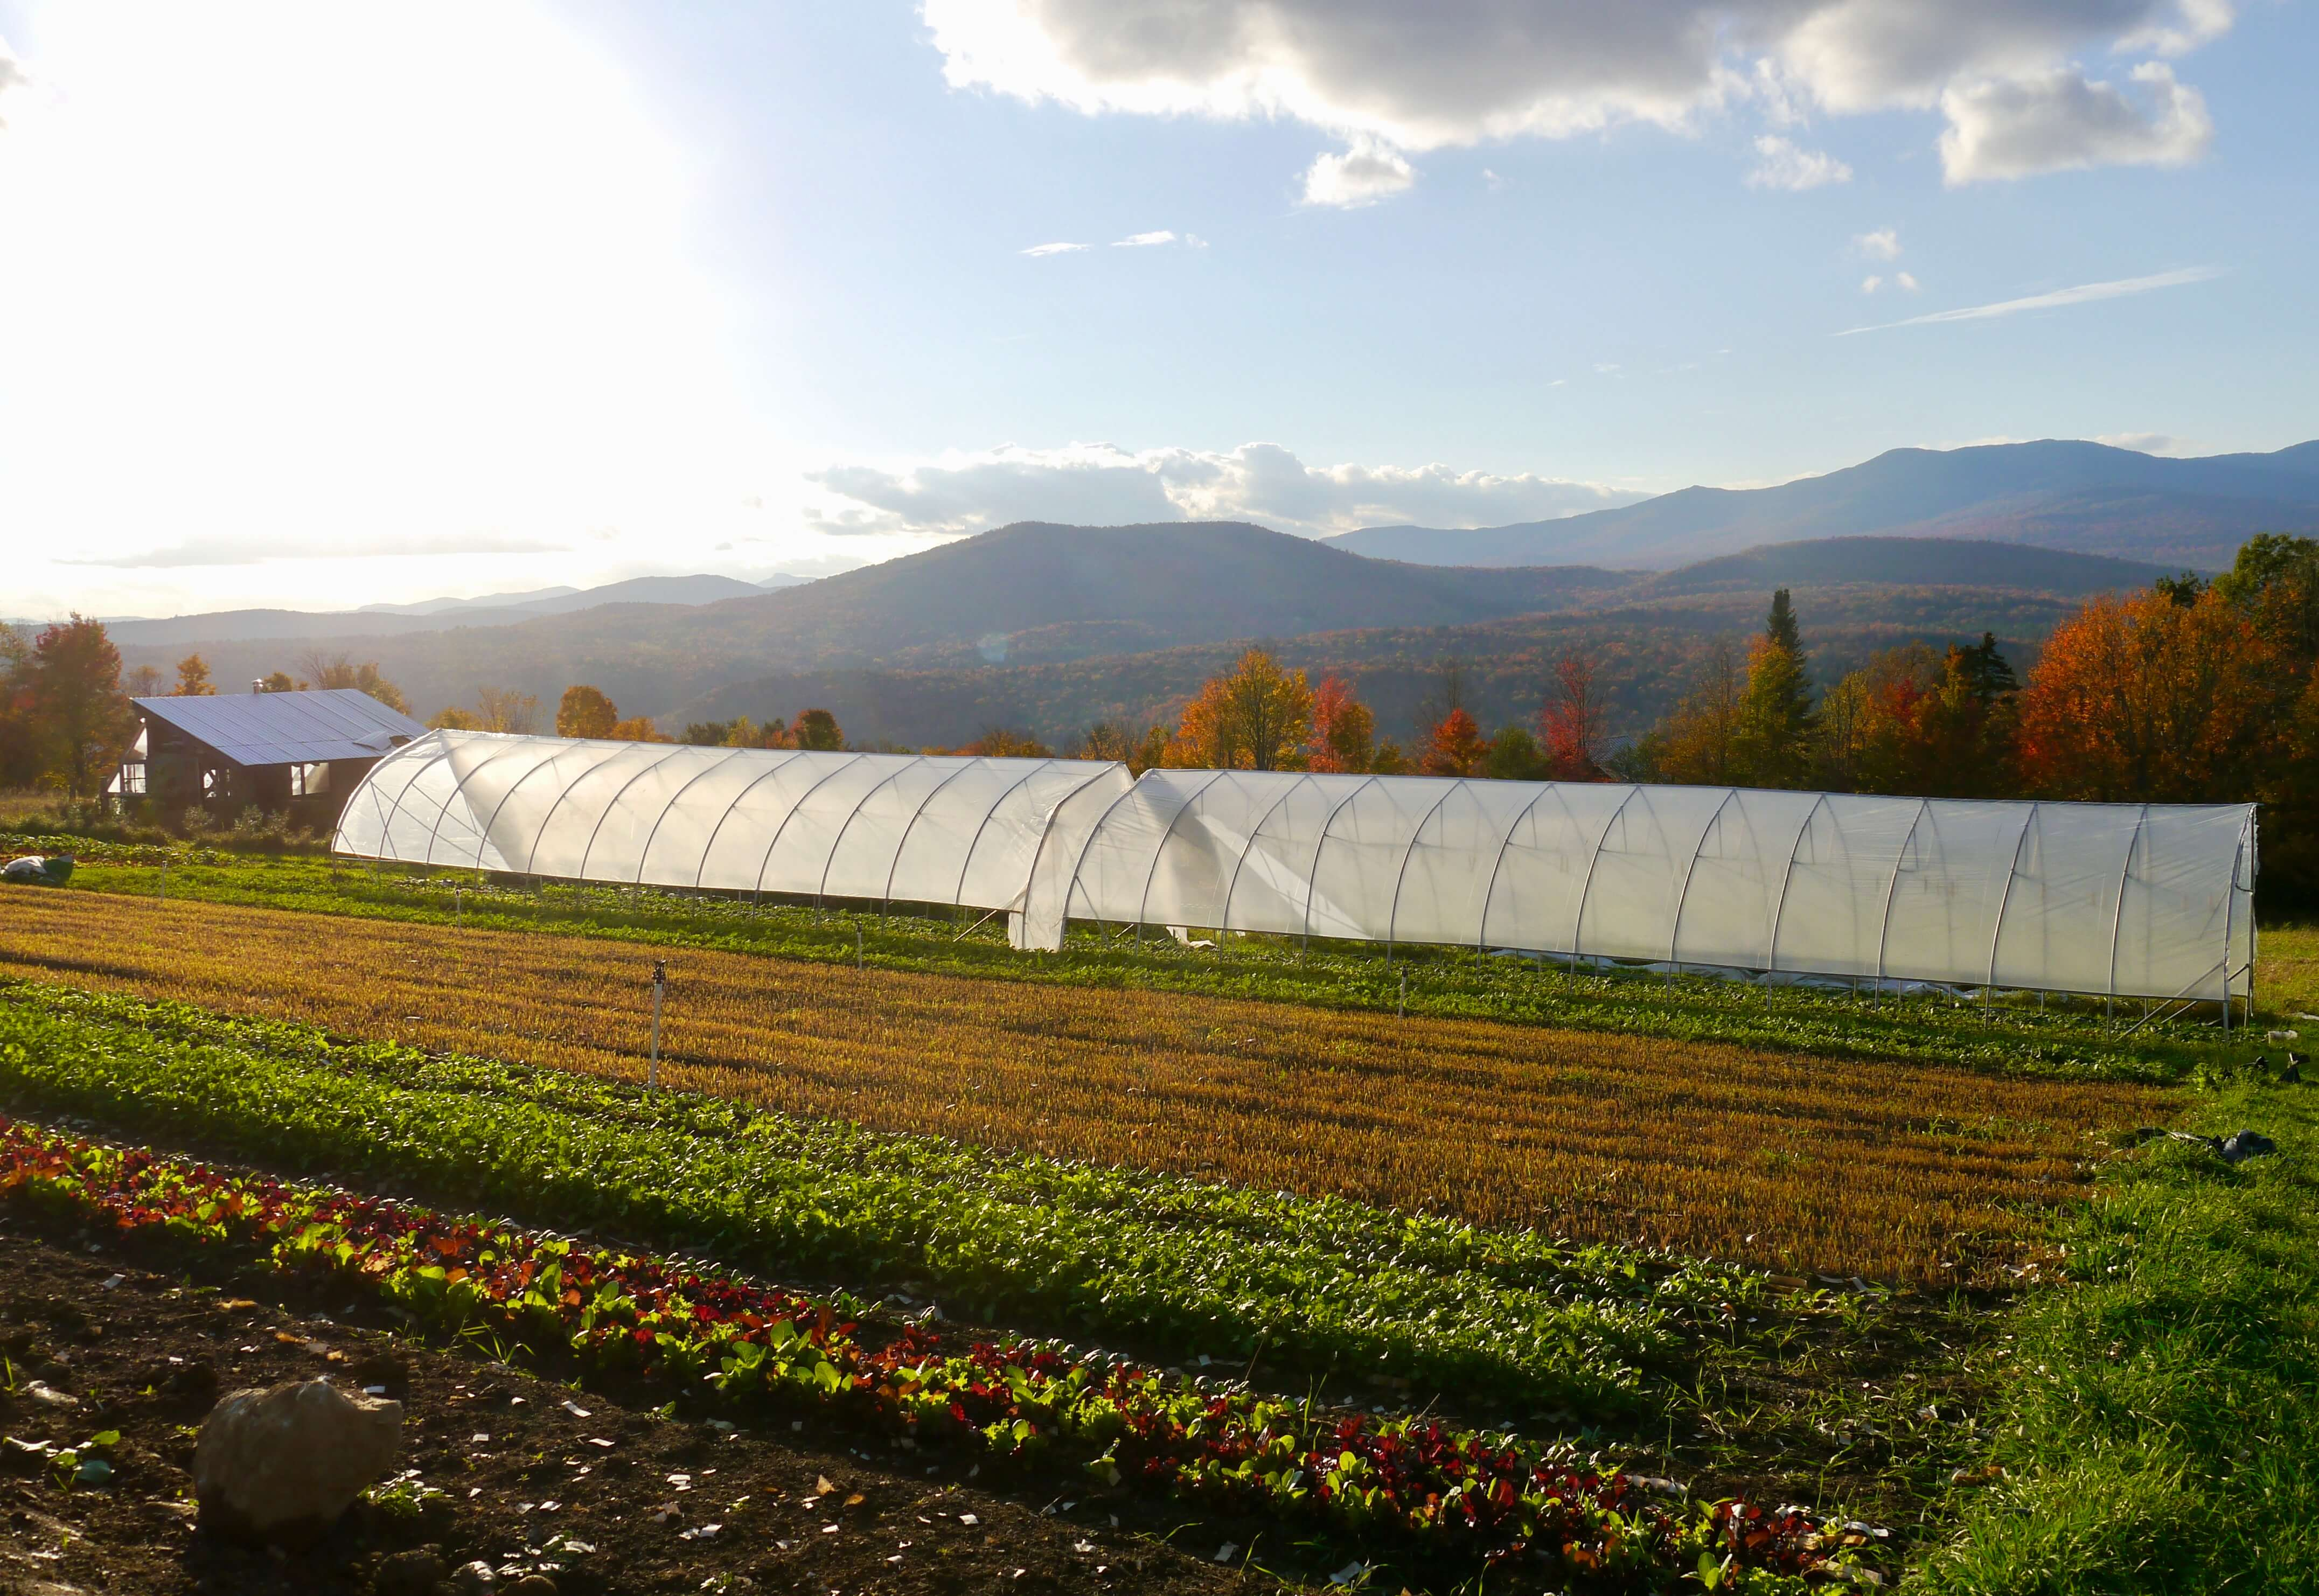 Planting cover crops is one way to put your garden to bed